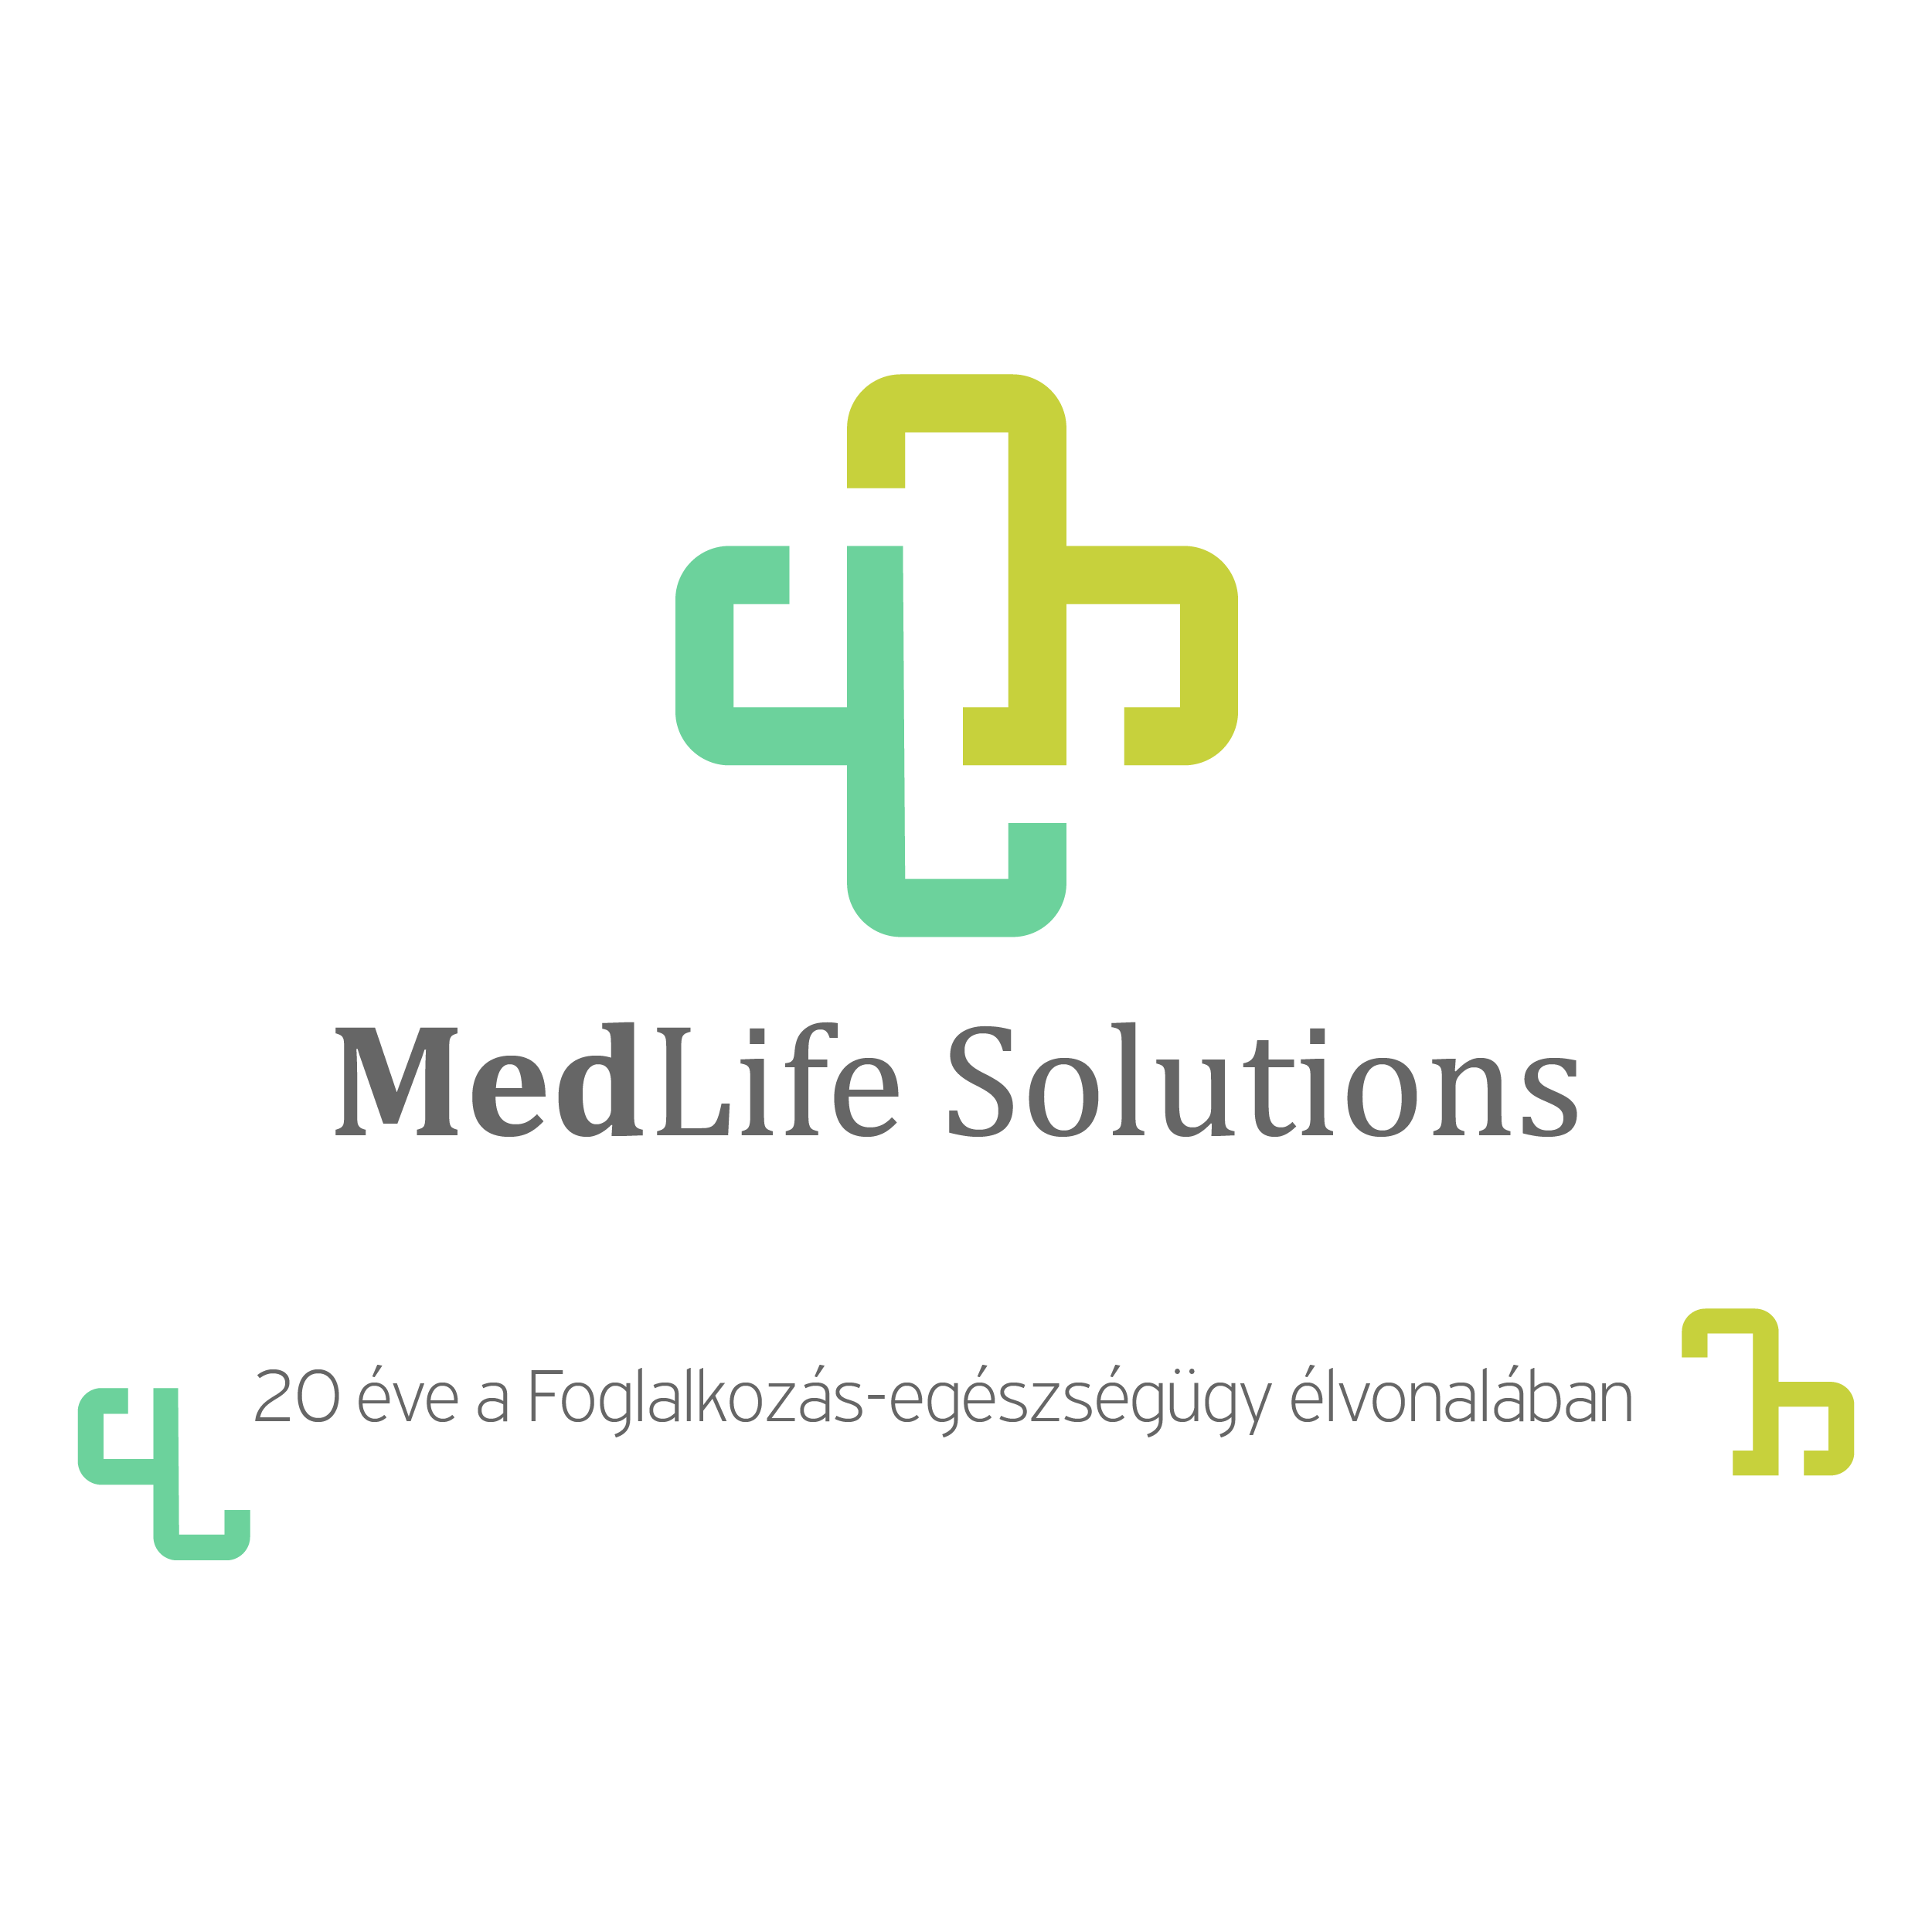 MedLife Solutions